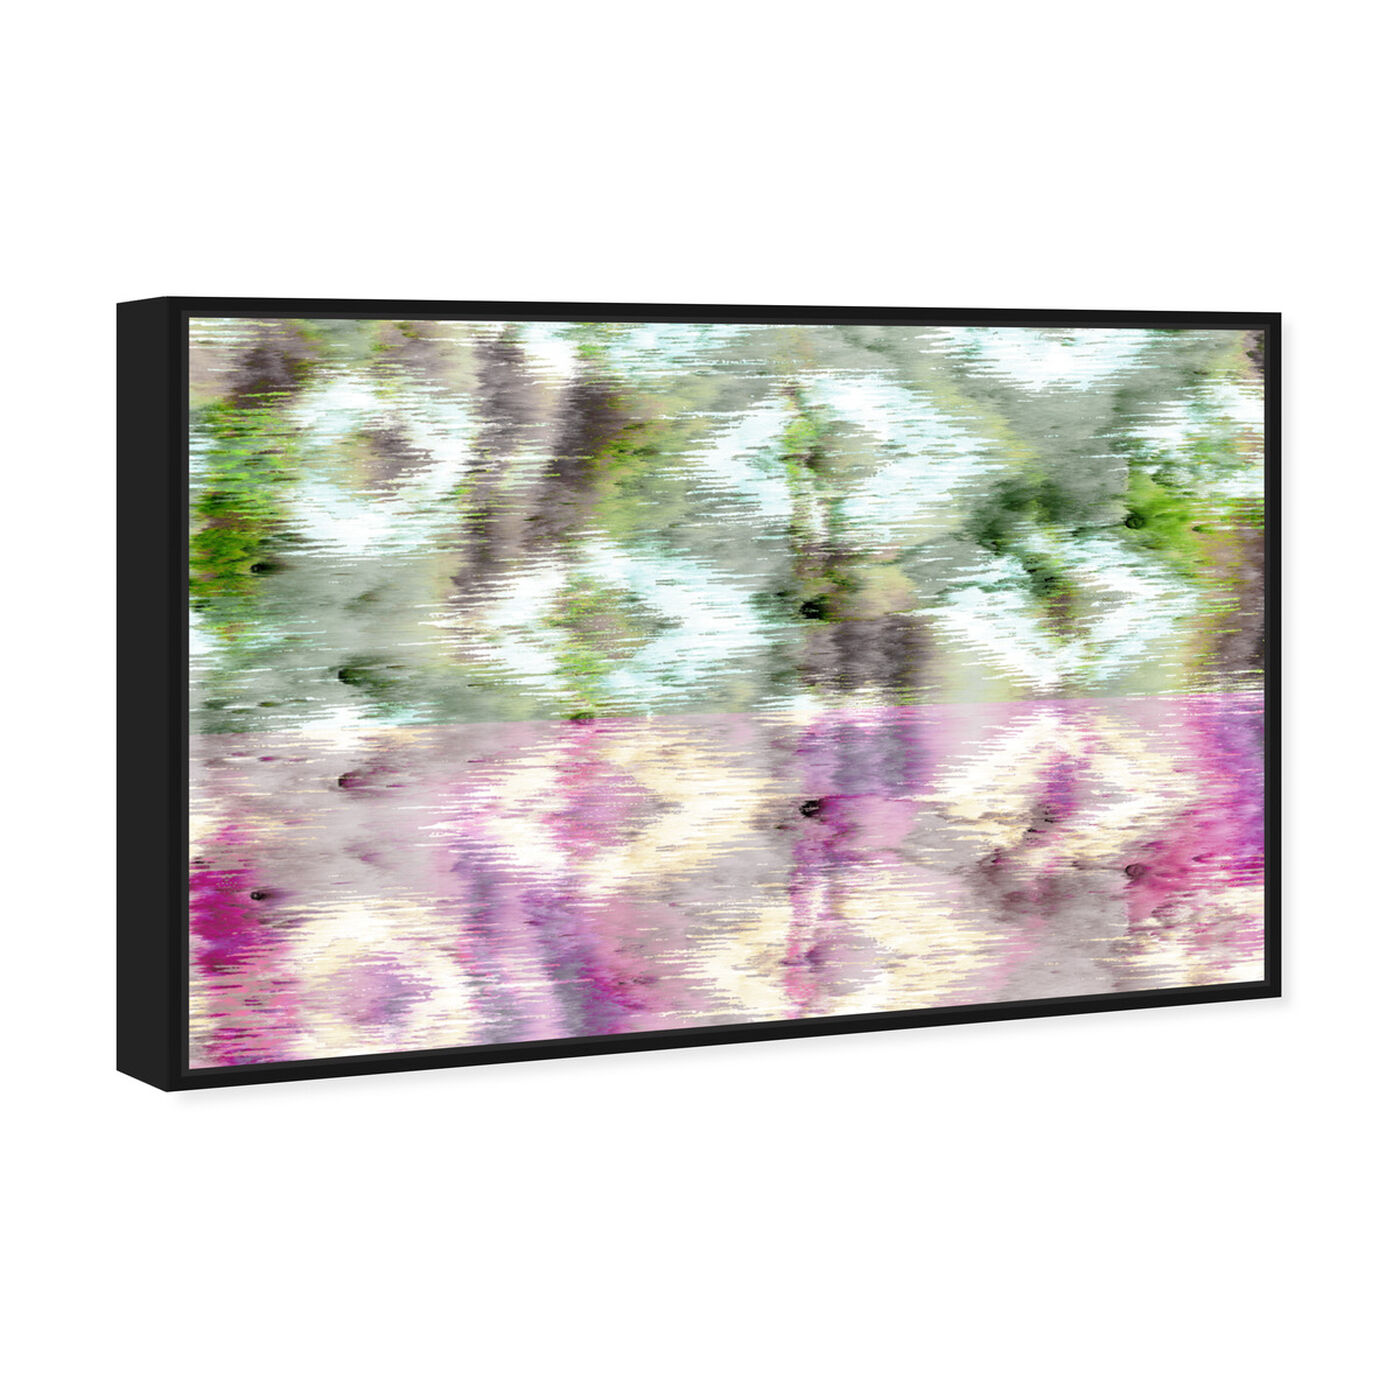 Angled view of Morning Rain featuring abstract and patterns art.